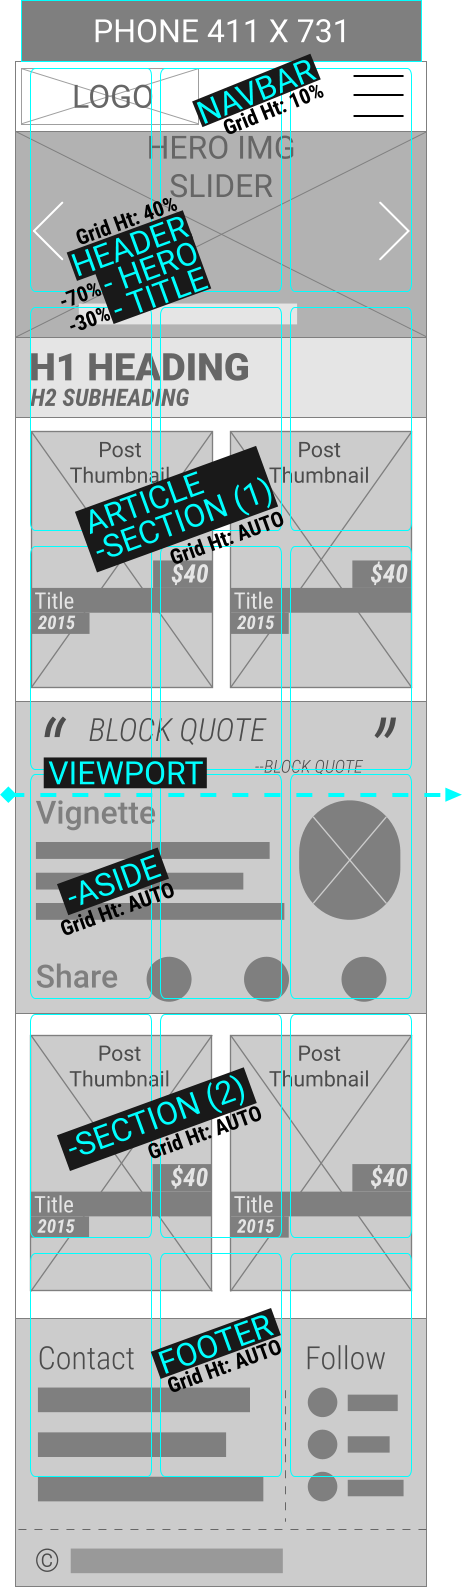 WIREFRAME OF MOBILE WEBSITE CREATED IN INEXPENSIVE WYSIWYG VECTOR EDITOR AND WEBSITE UPLOADER PROGRAM